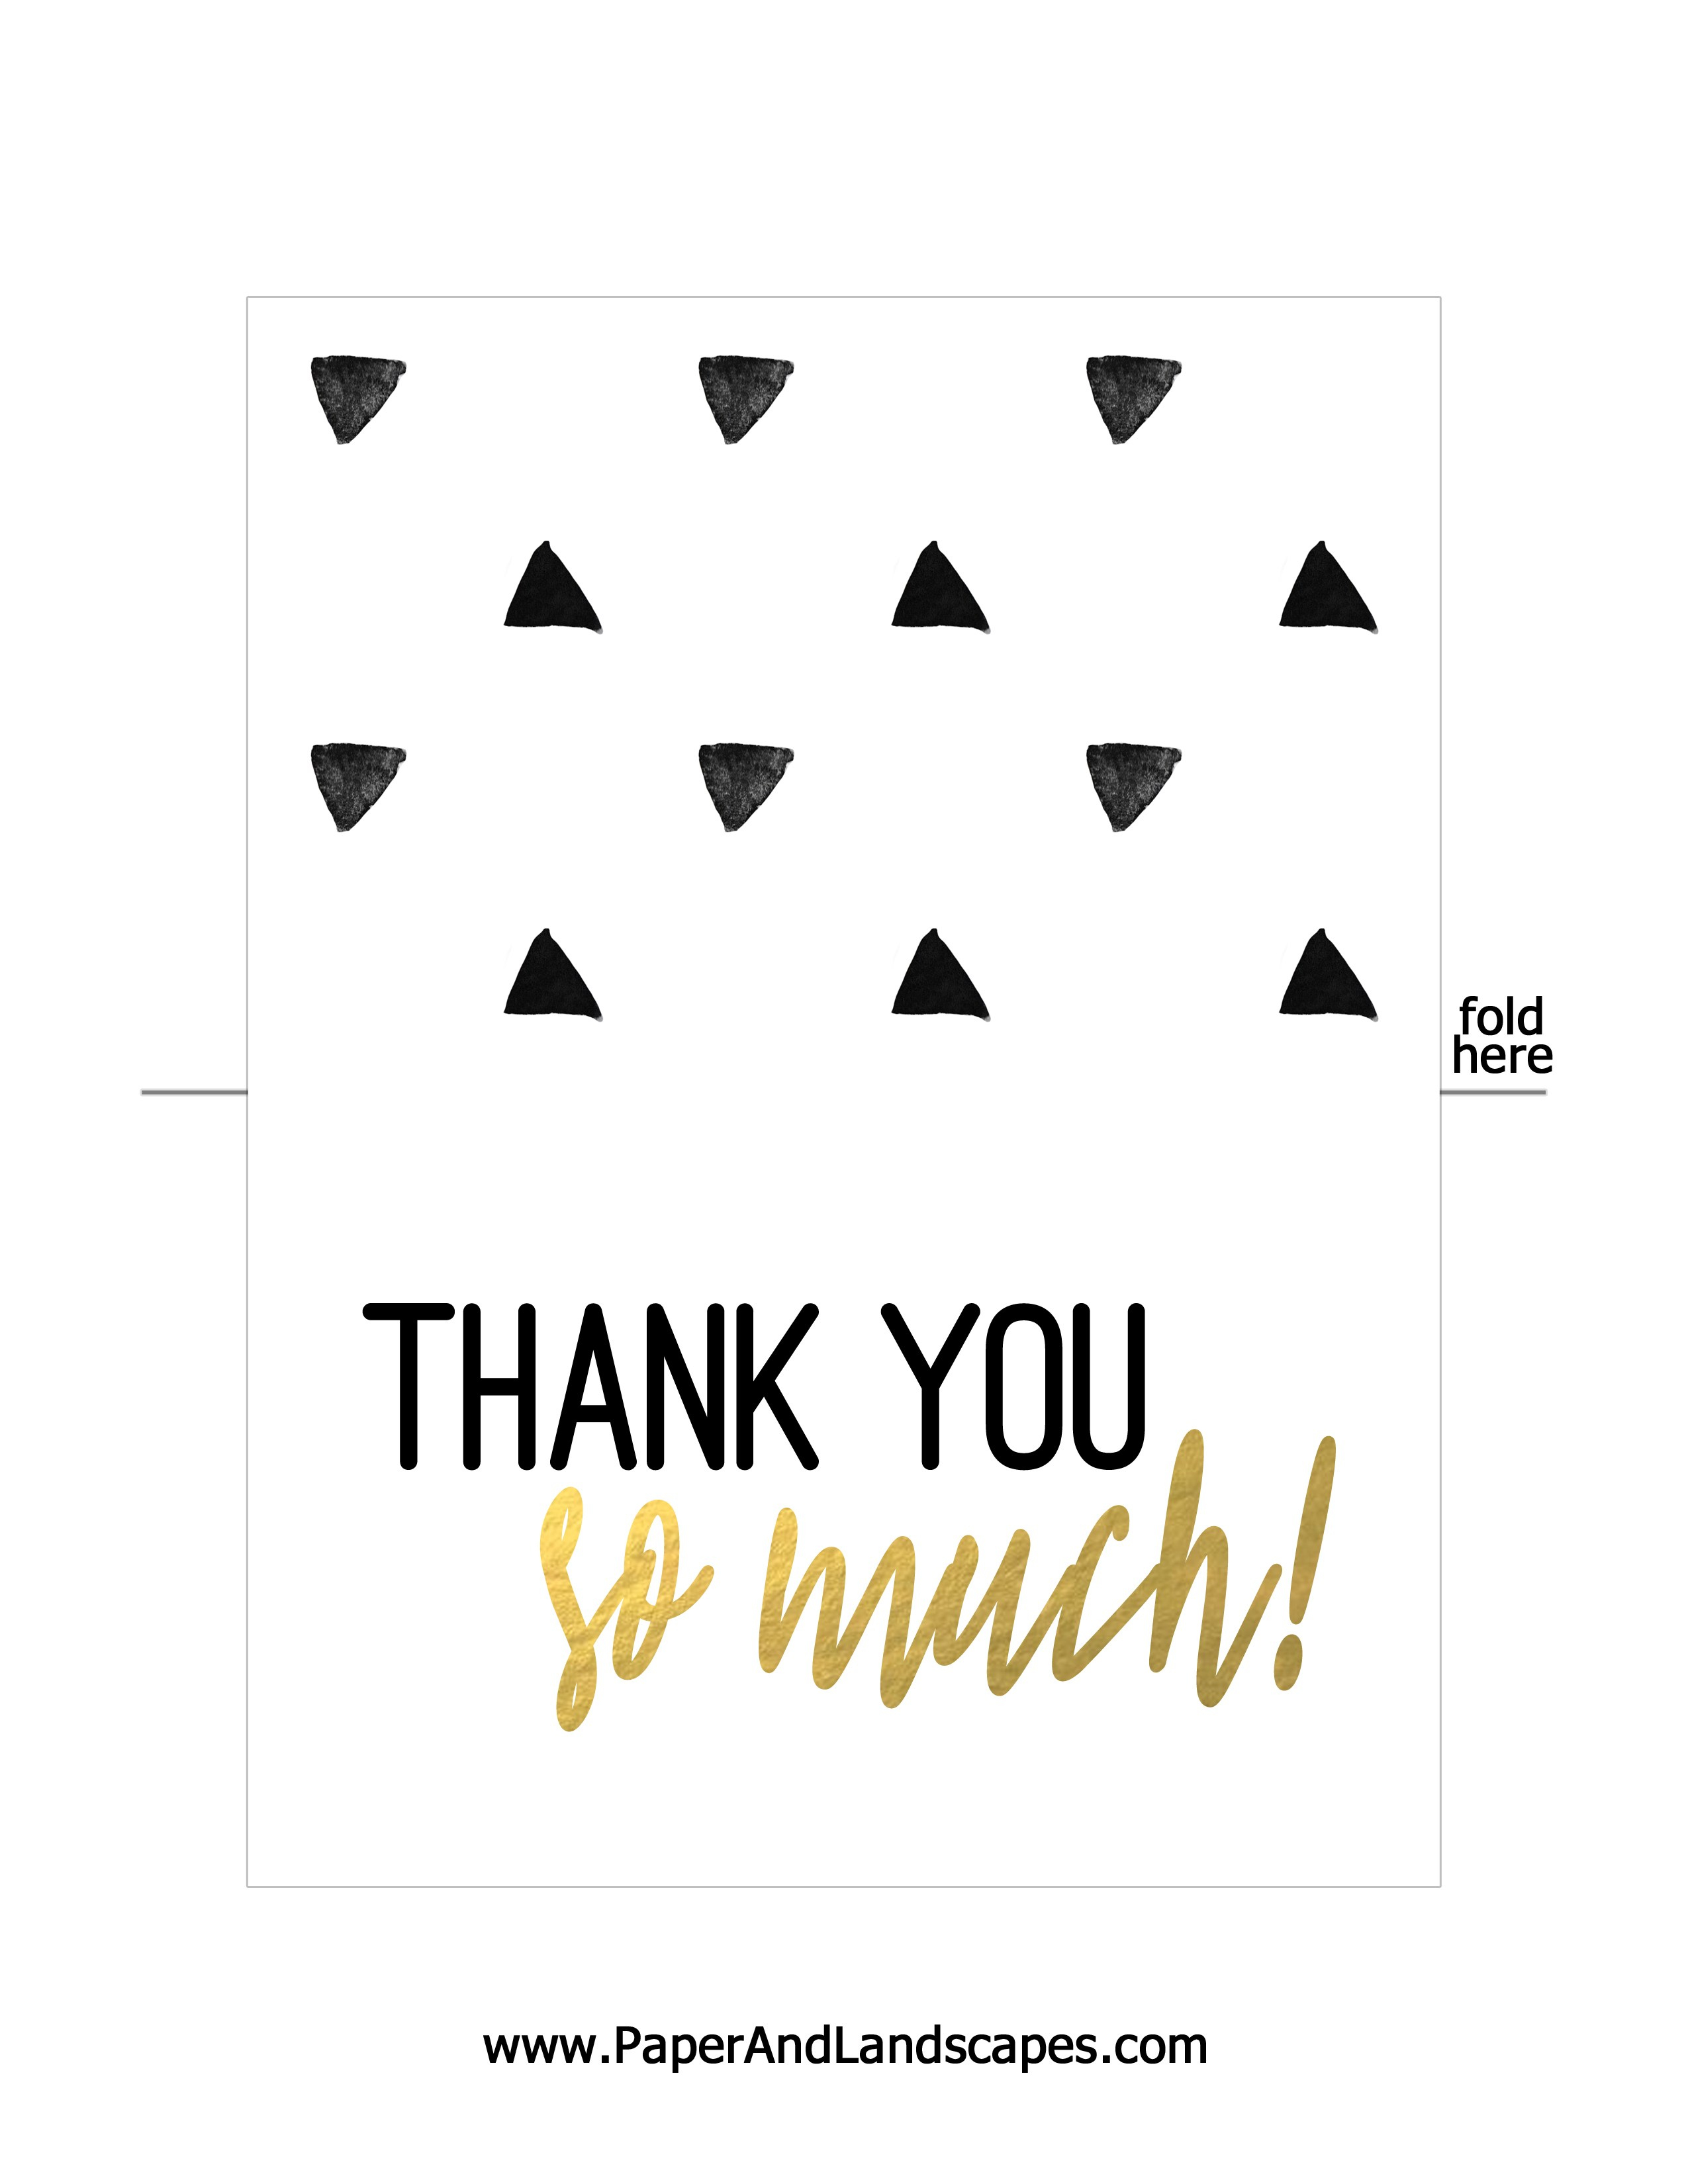 Free Printable Thank You Cards - Paper And Landscapes - Free Printable Thank You Cards